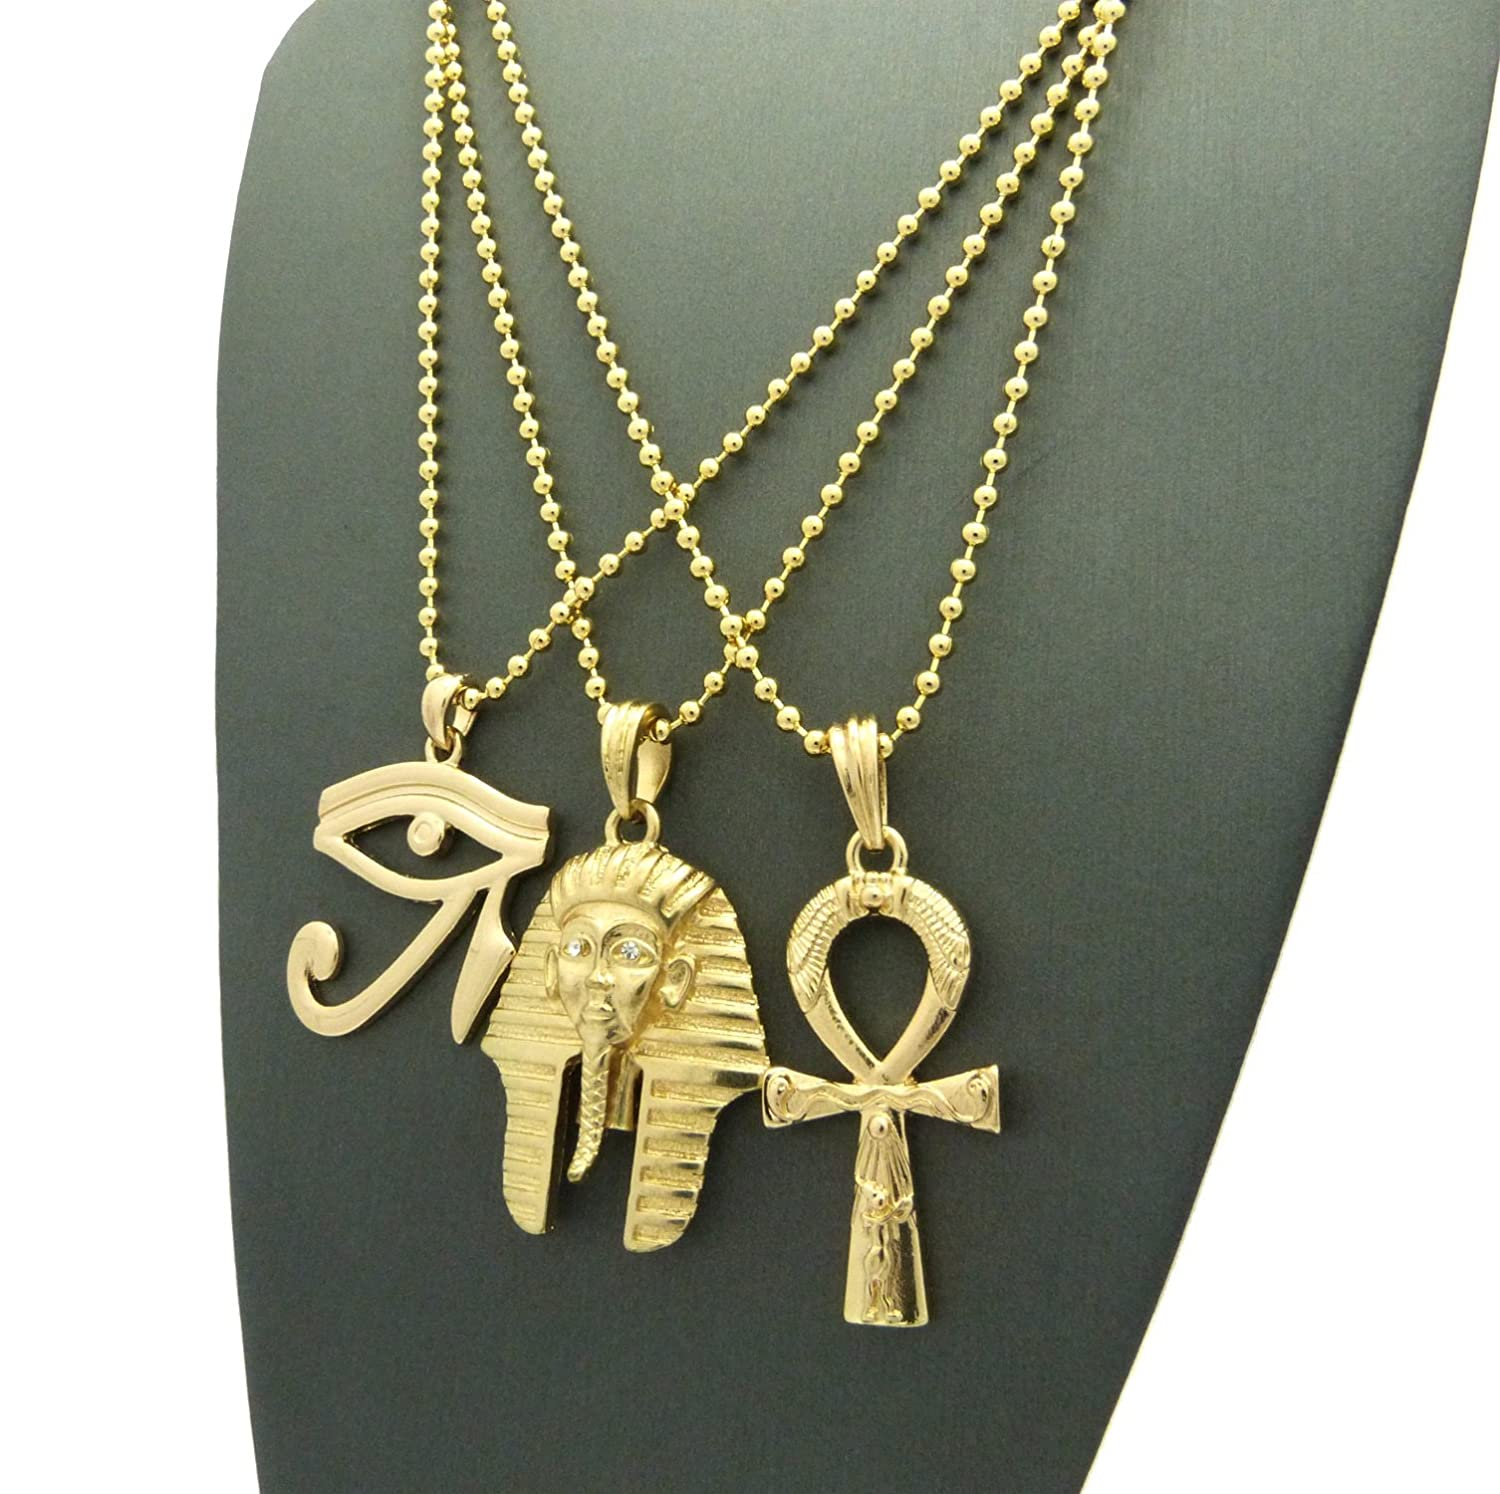 box necklace amazon out chains chain set gold gun machine pendant ski iced micro man com tone goon dp mask